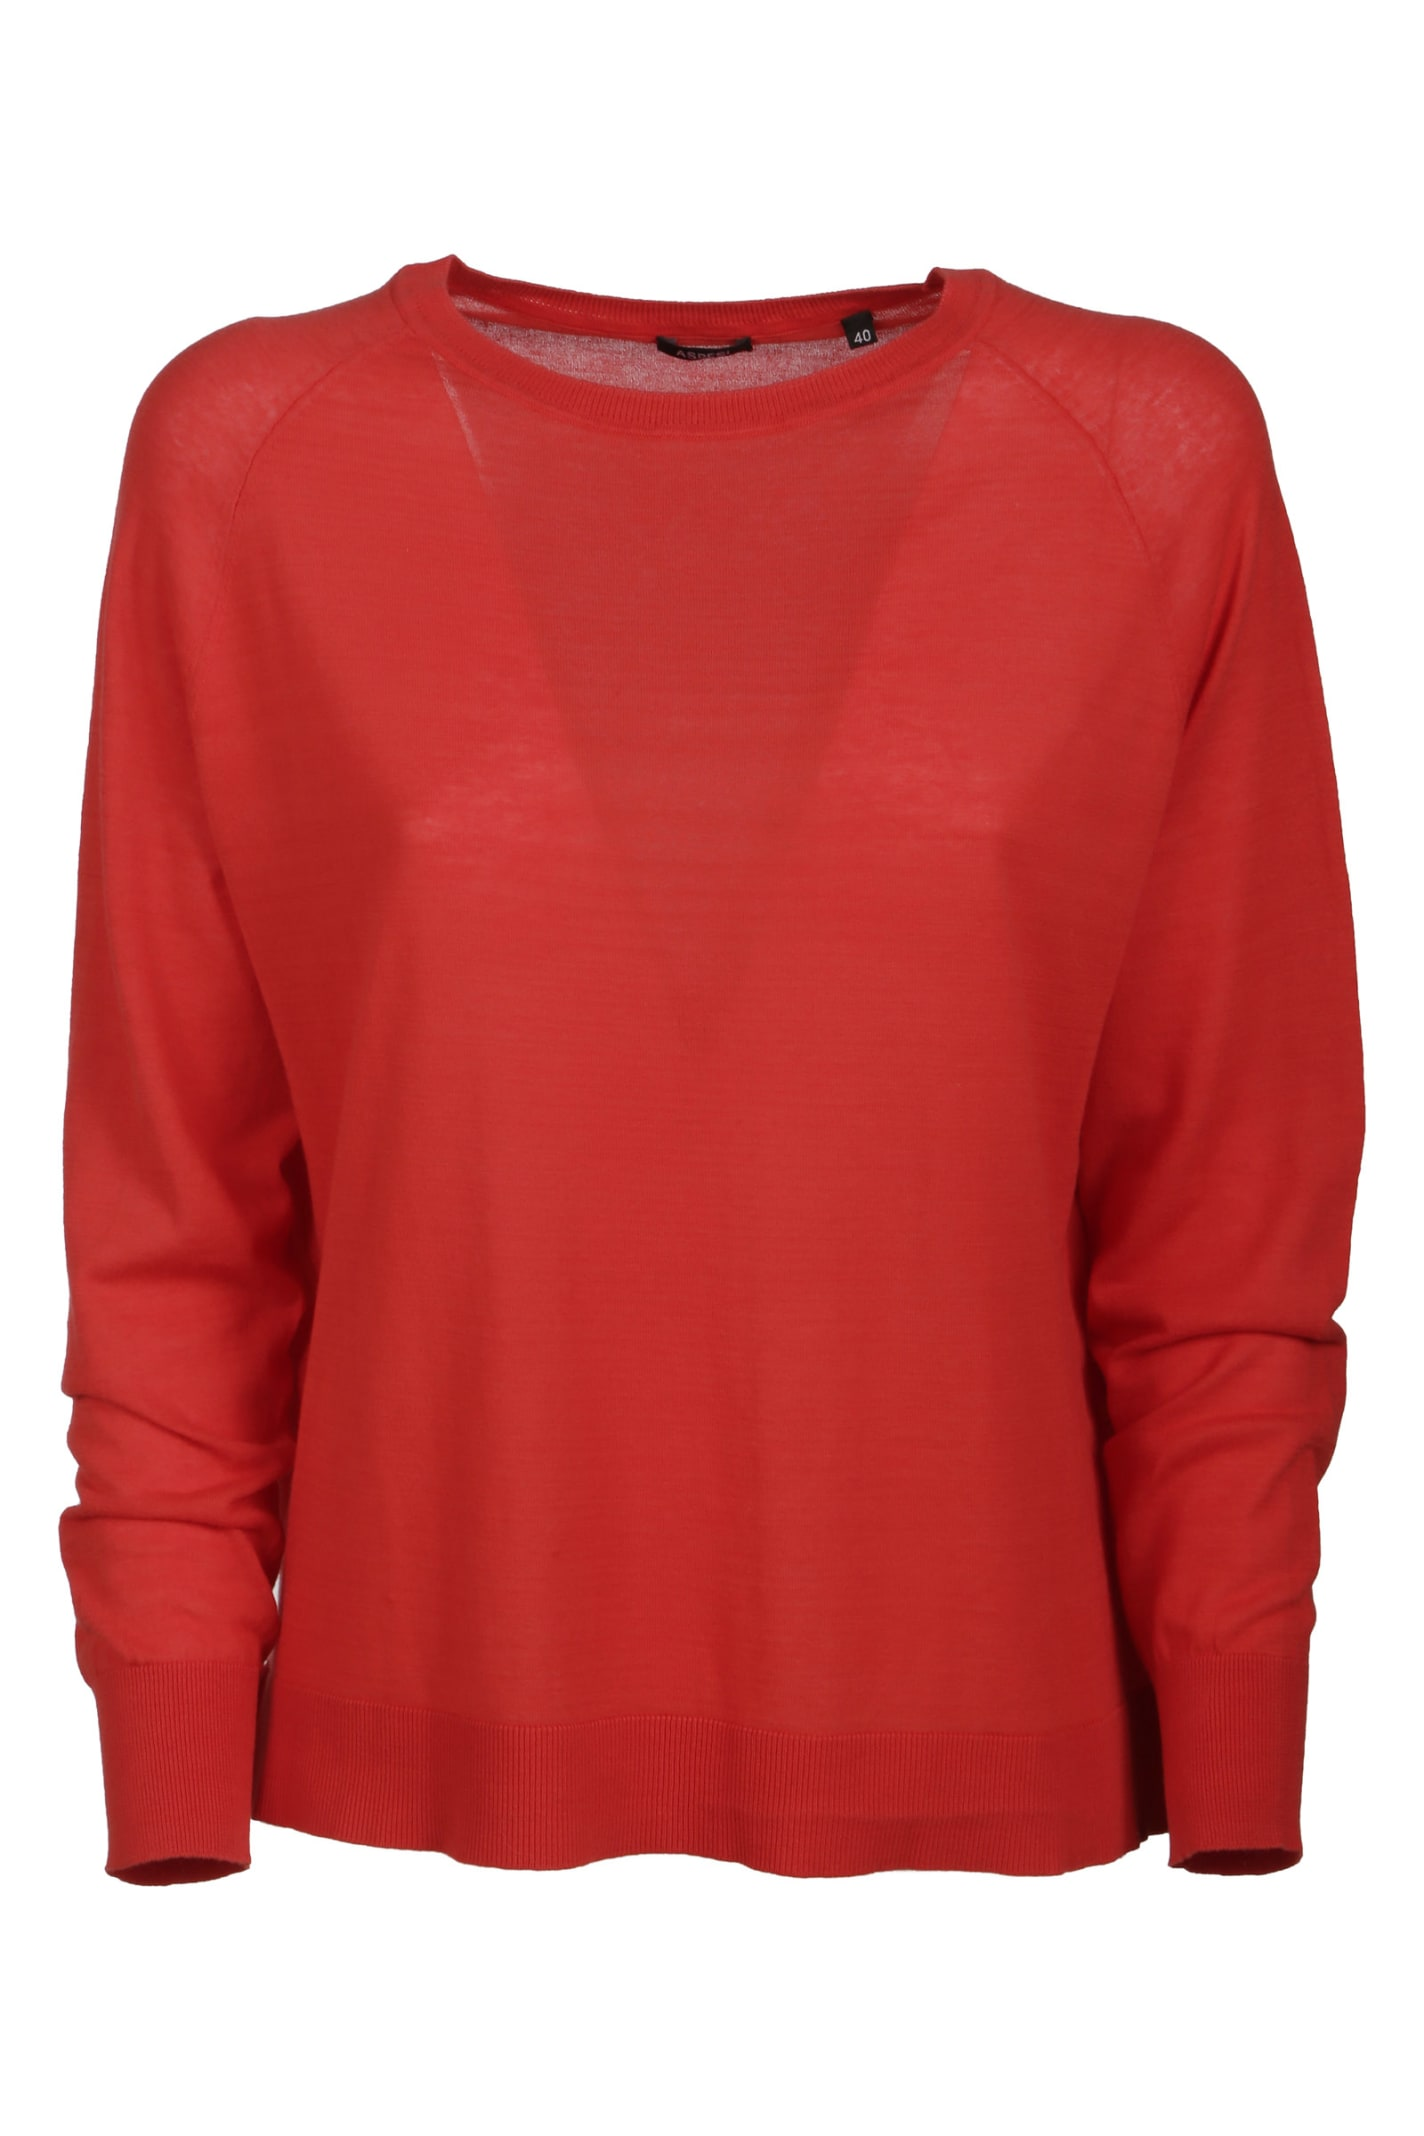 Aspesi Relaxed Fit Top